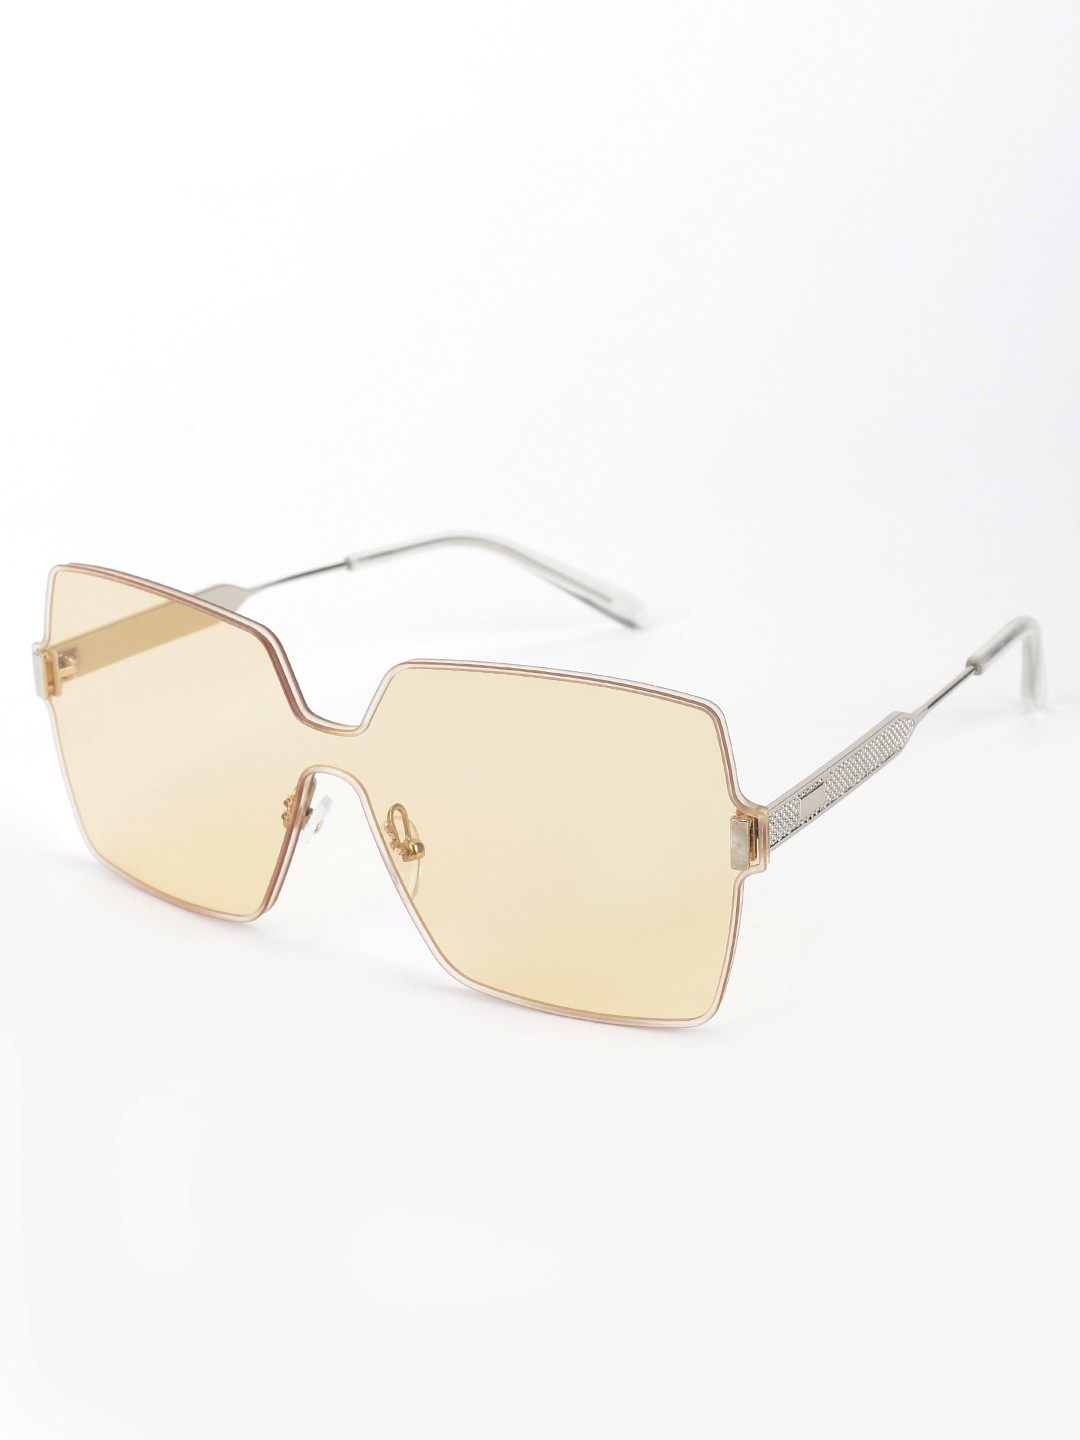 Style Fiesta Yellow Coloured Lens Oversized Retro Sunglasses 1